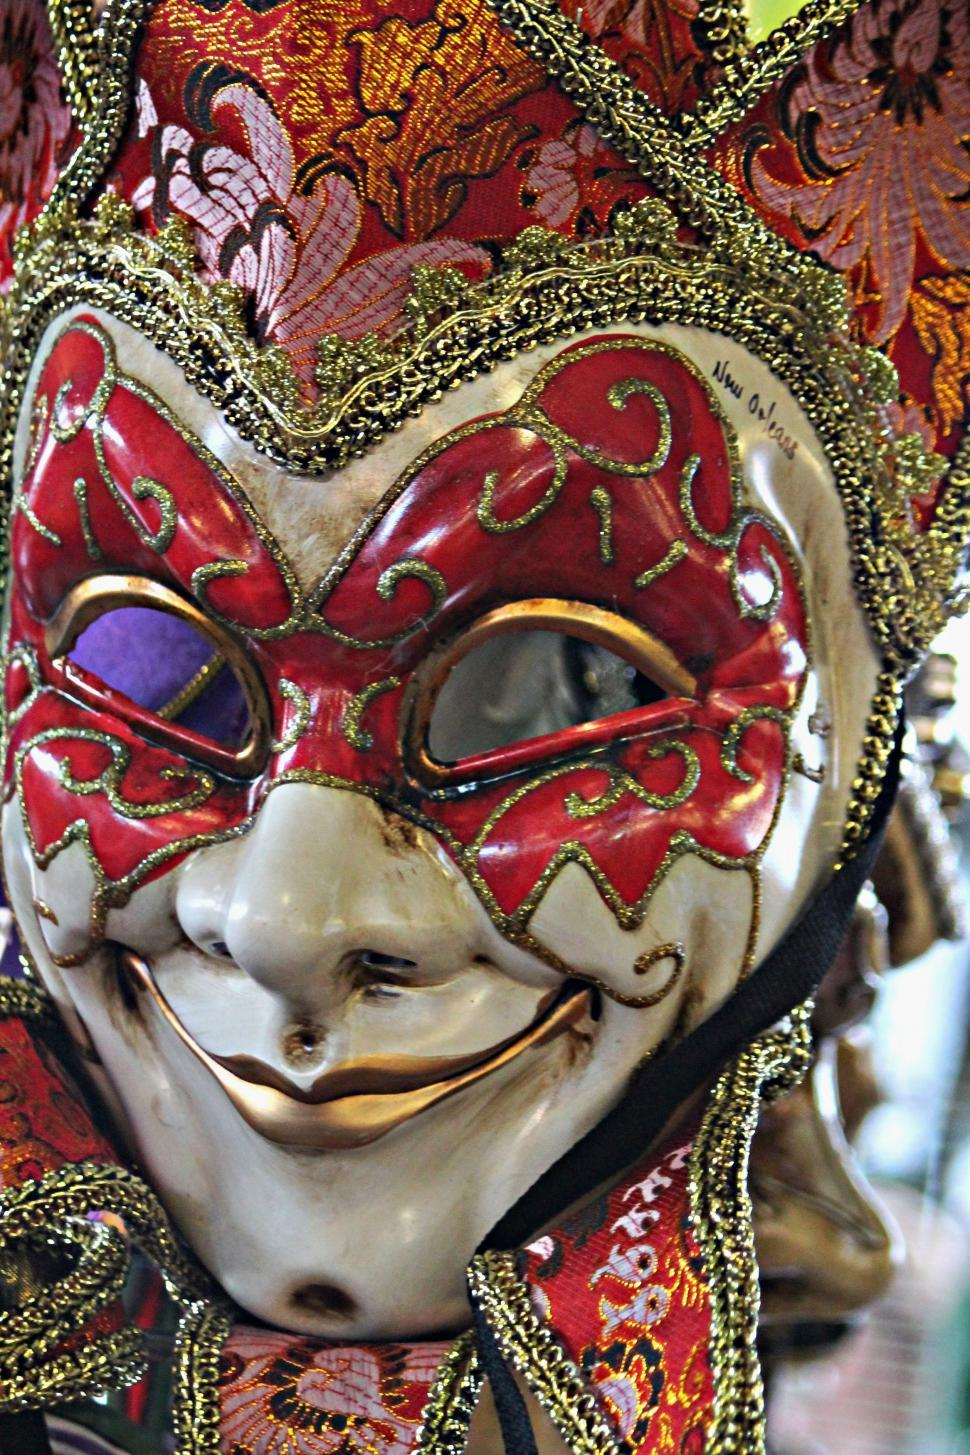 Download Free Stock Photo of Mardi Gras Mask